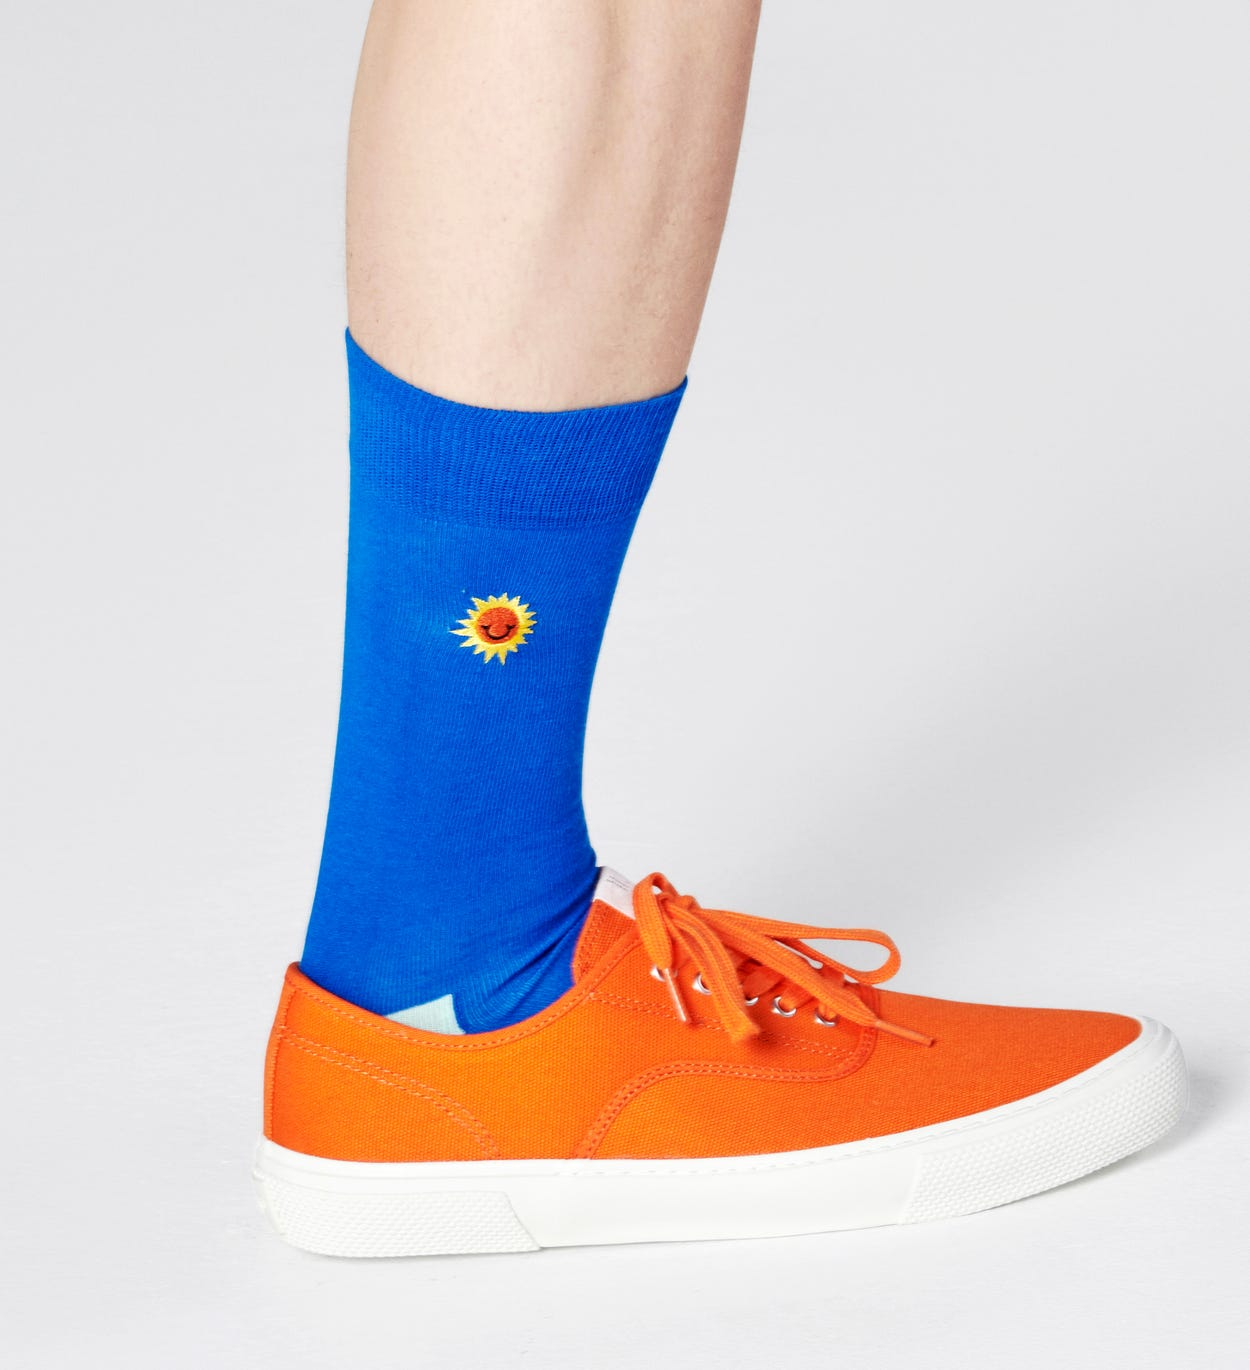 Embroidery Sunny Smile Sock